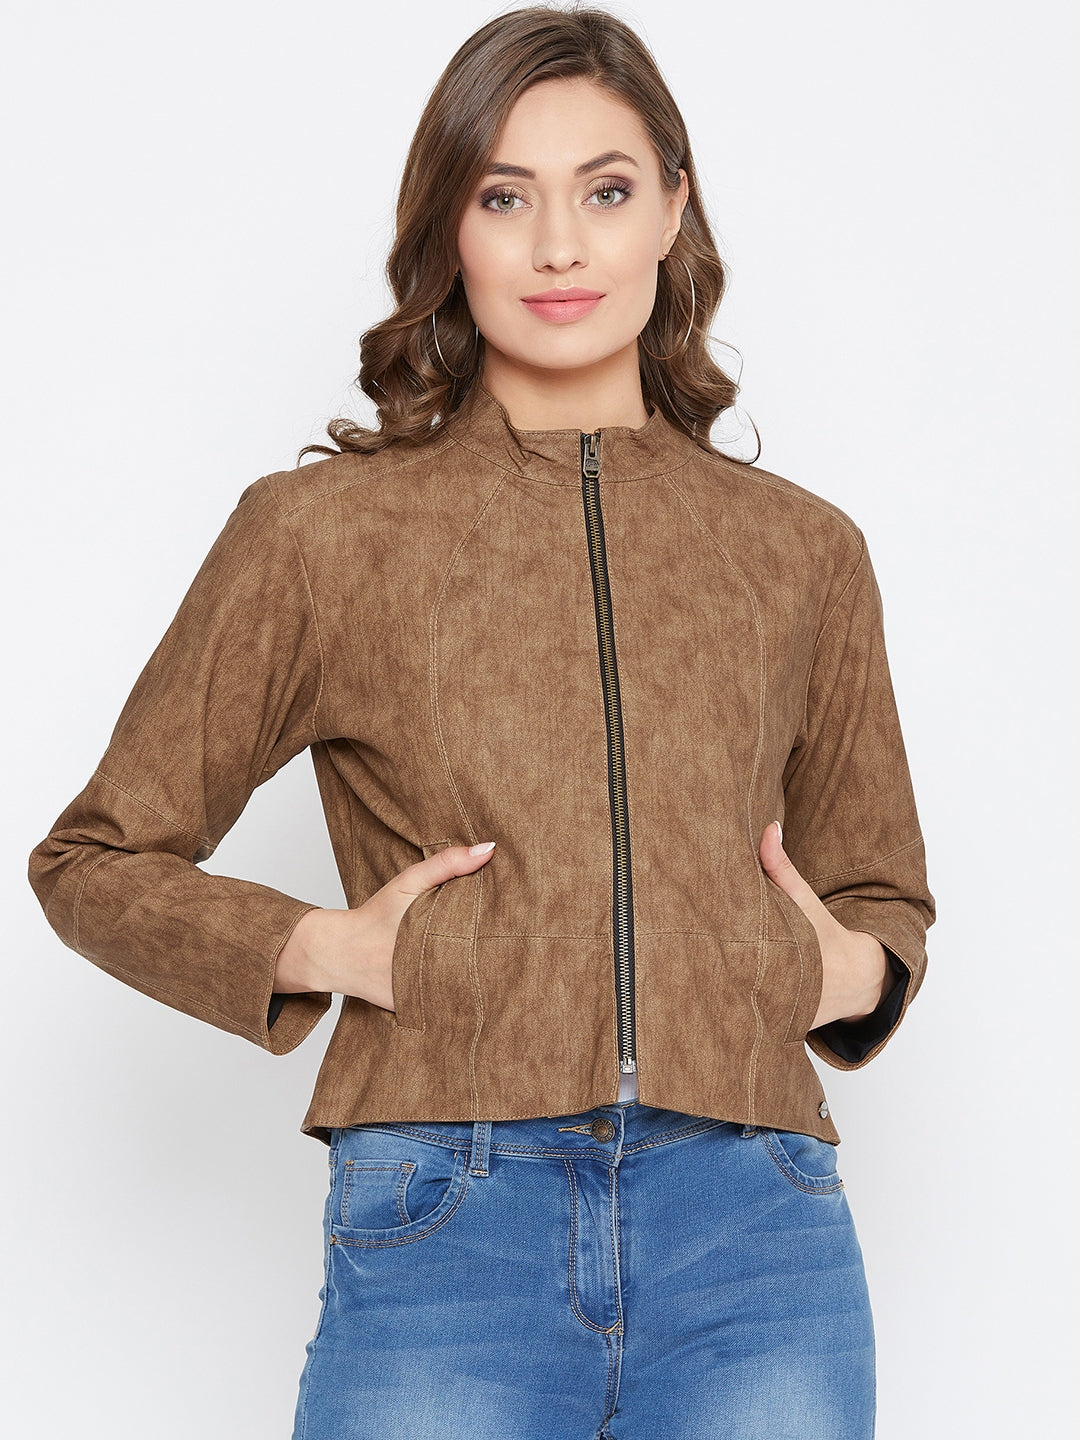 JUMP USA Women Tan Solid Casual Leather Jacket